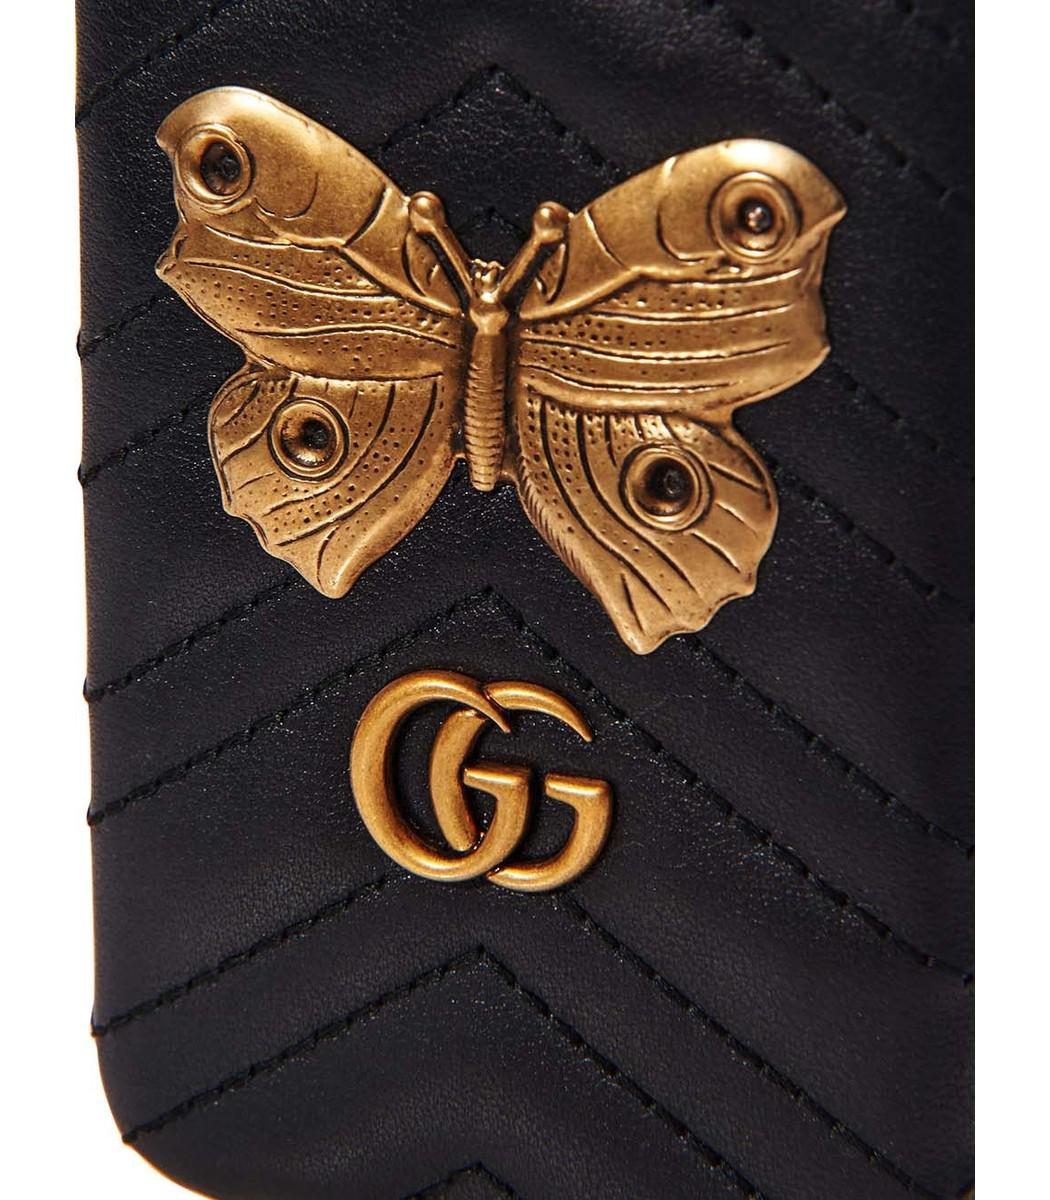 b7a9b5a0827 Lyst - Gucci Black Gg Marmont Moth Stud Iphone 7 Case in Black